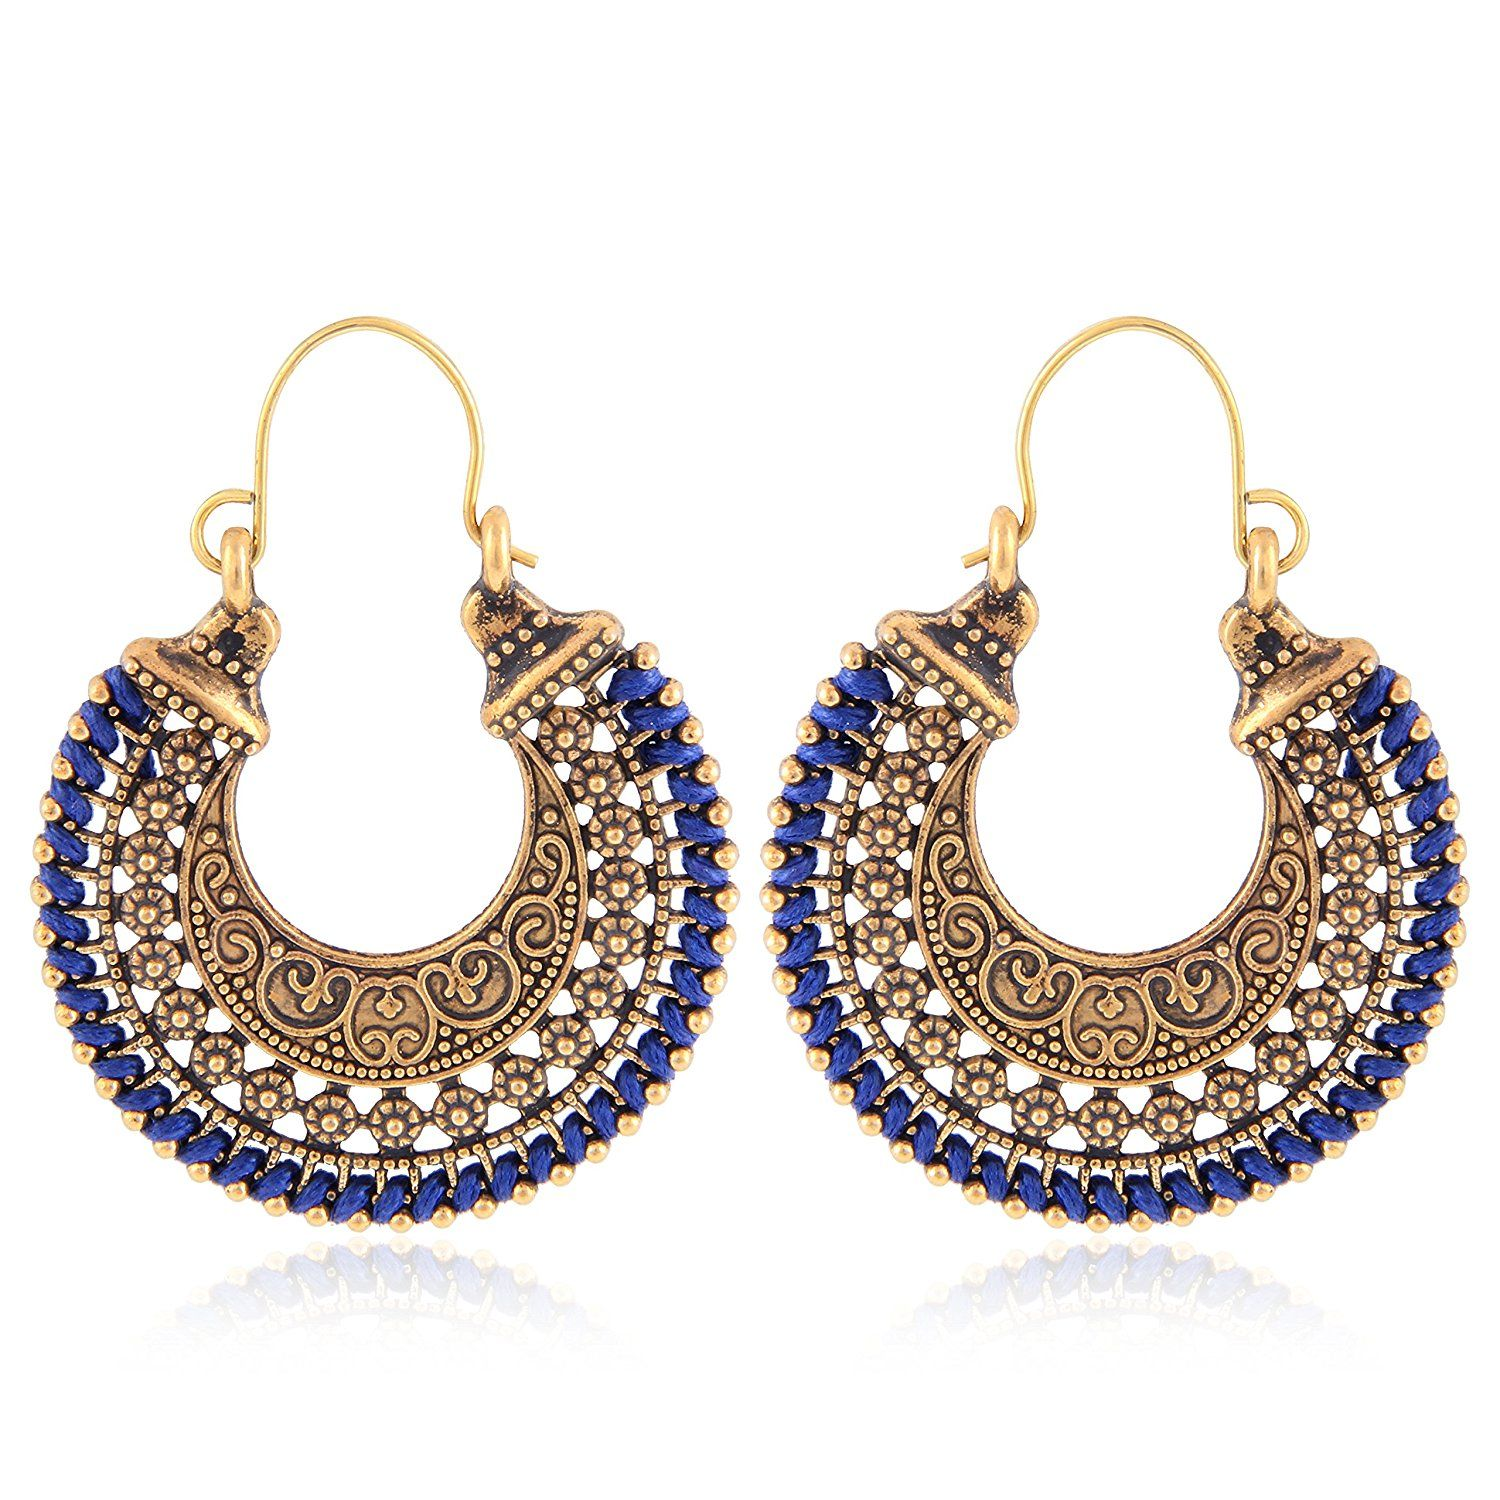 d13bf59dbd78 Buy Tiaraz Blue Alloy Hoop Earrings for Women Online at Low Prices in India